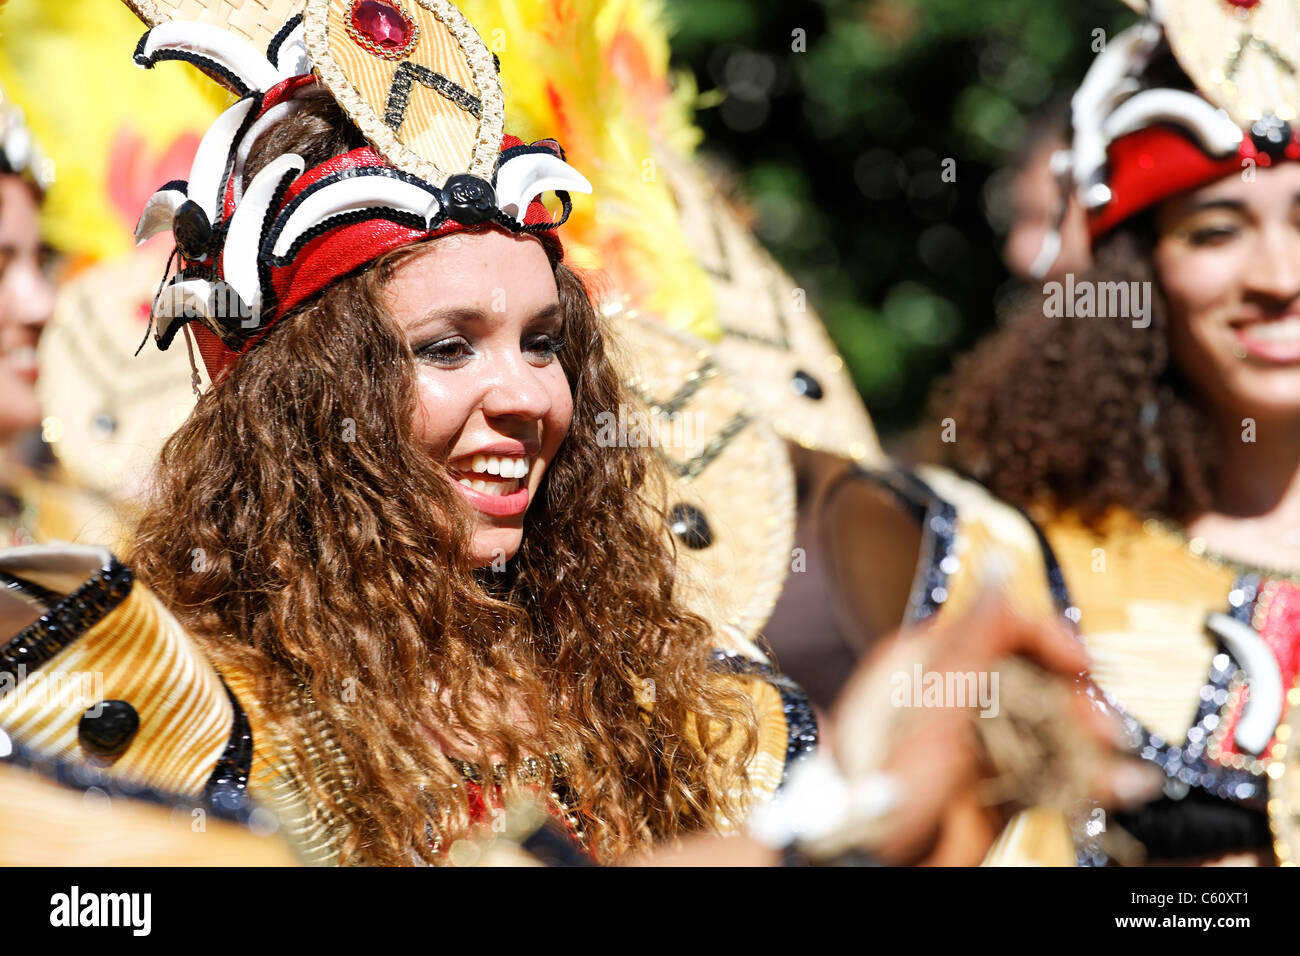 Performer in colourful costume at the 2006 Notting Hill Carnival, London, UK - Stock Image